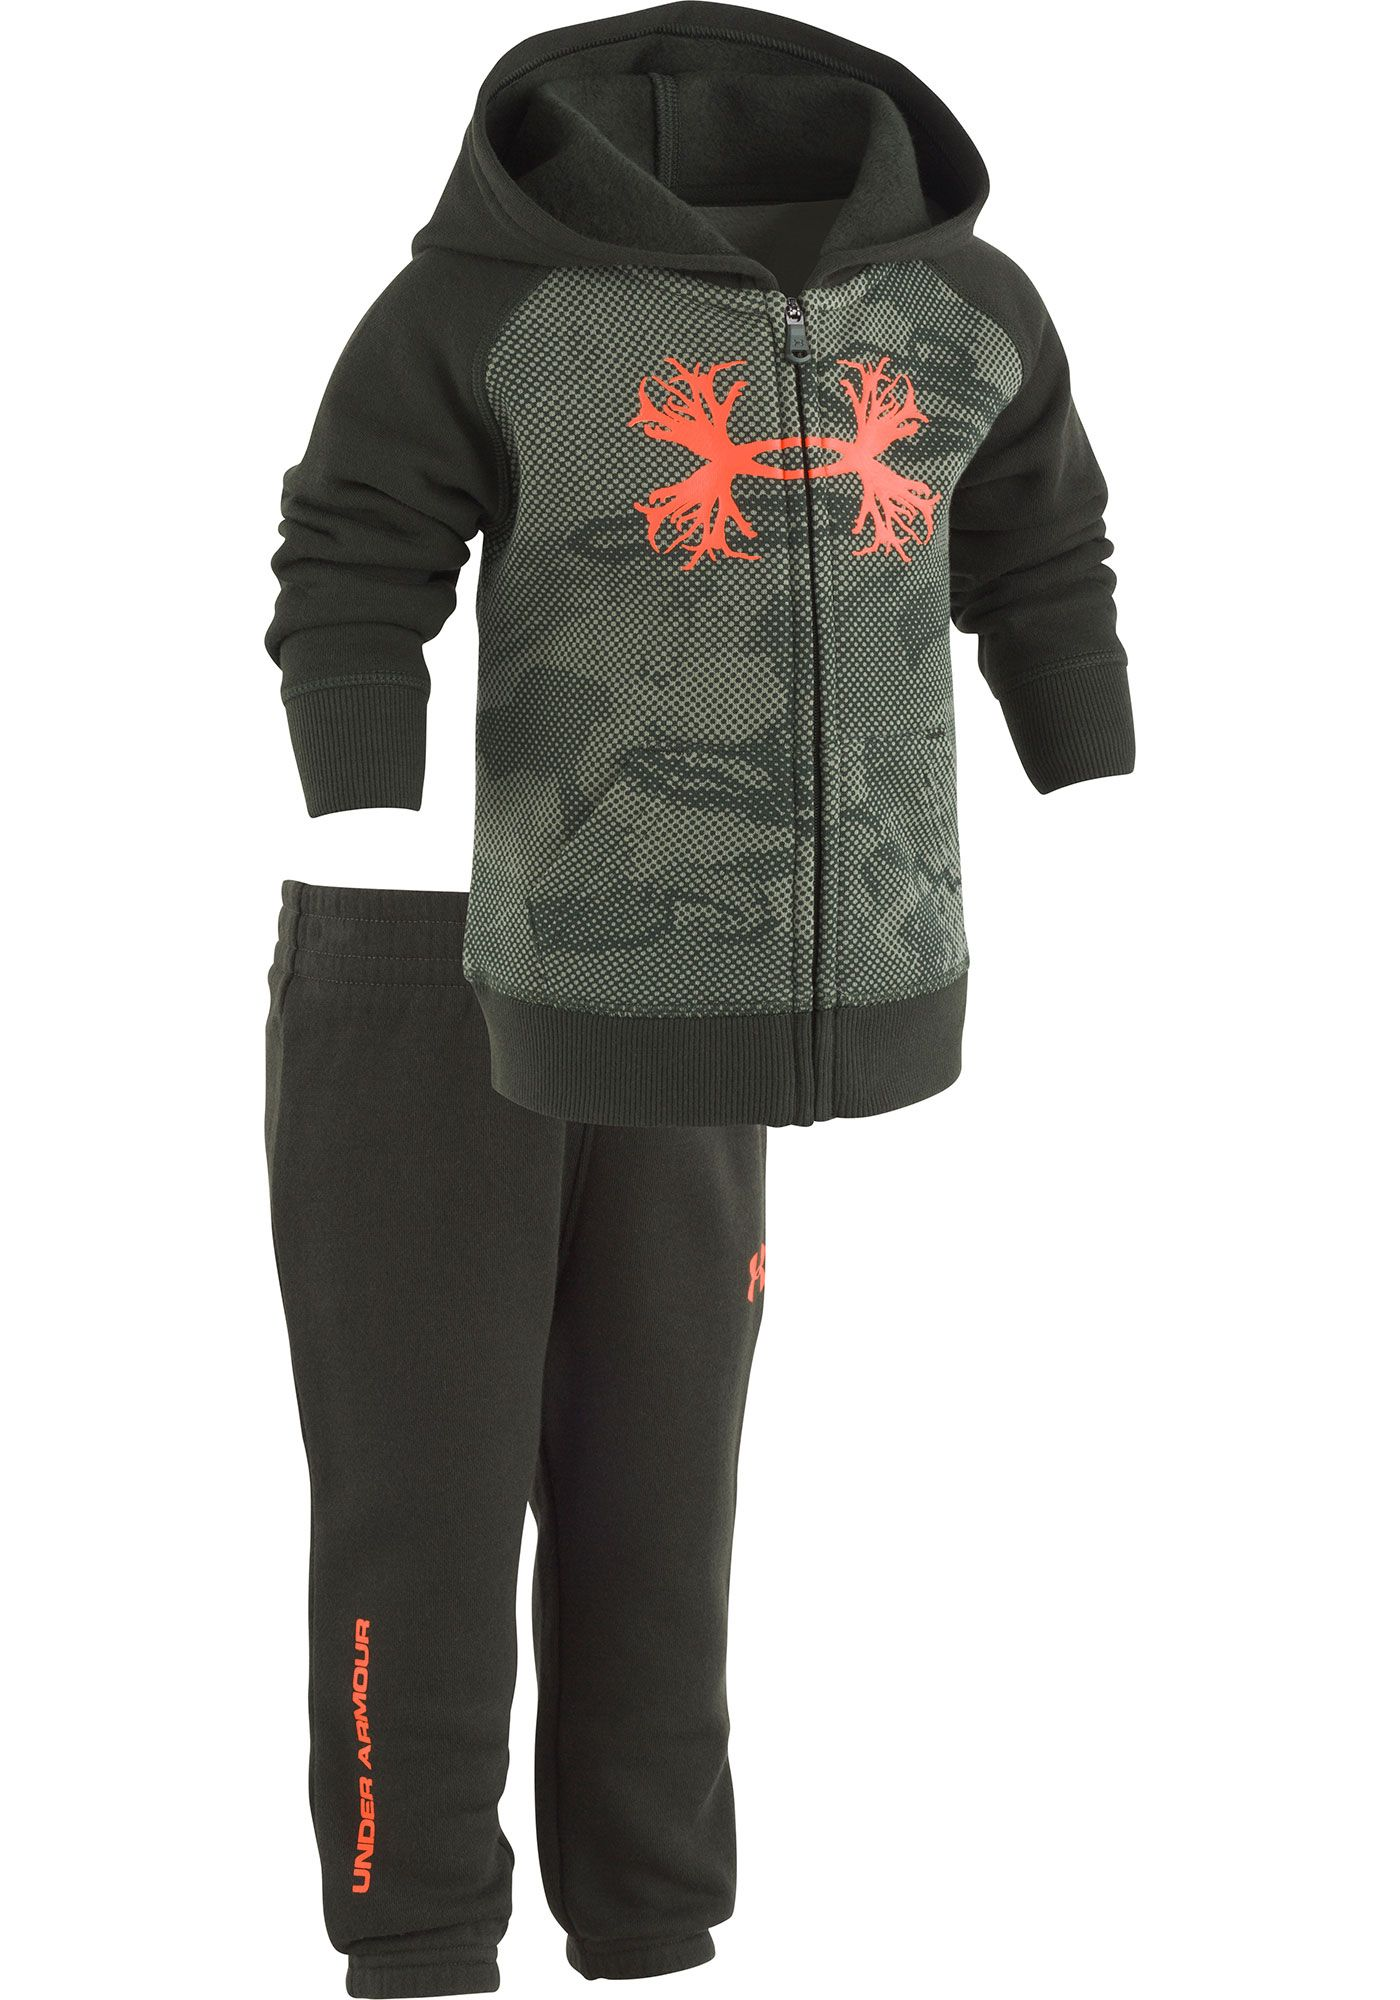 Under Armour Infant Boys' Rival Fleece Reaper Full-Zip Hoodie and Pant Set